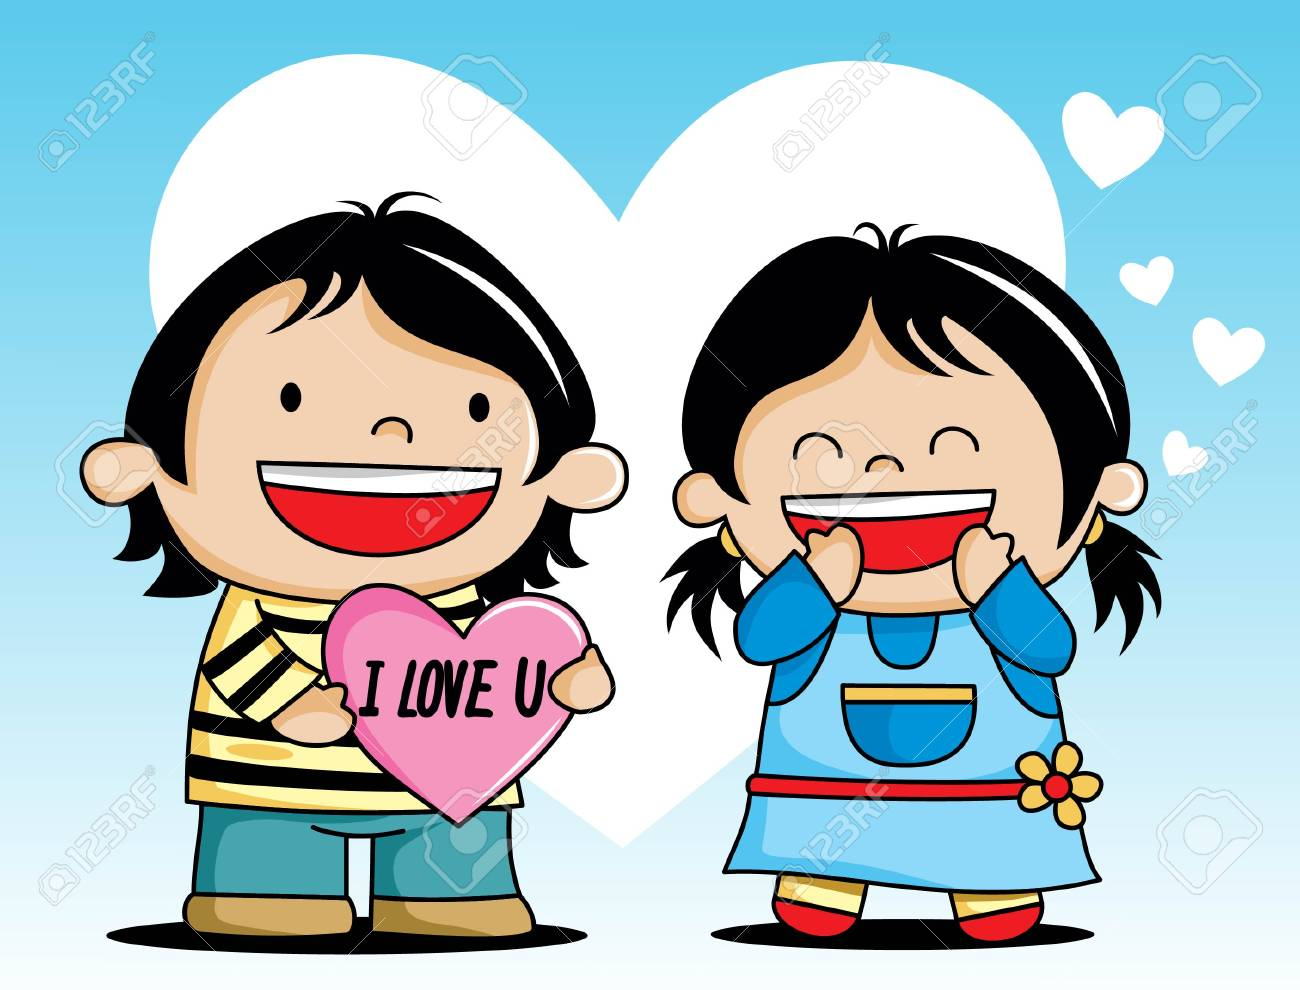 Happy Valentine S Day Lover Couple Cartoon Royalty Free Cliparts